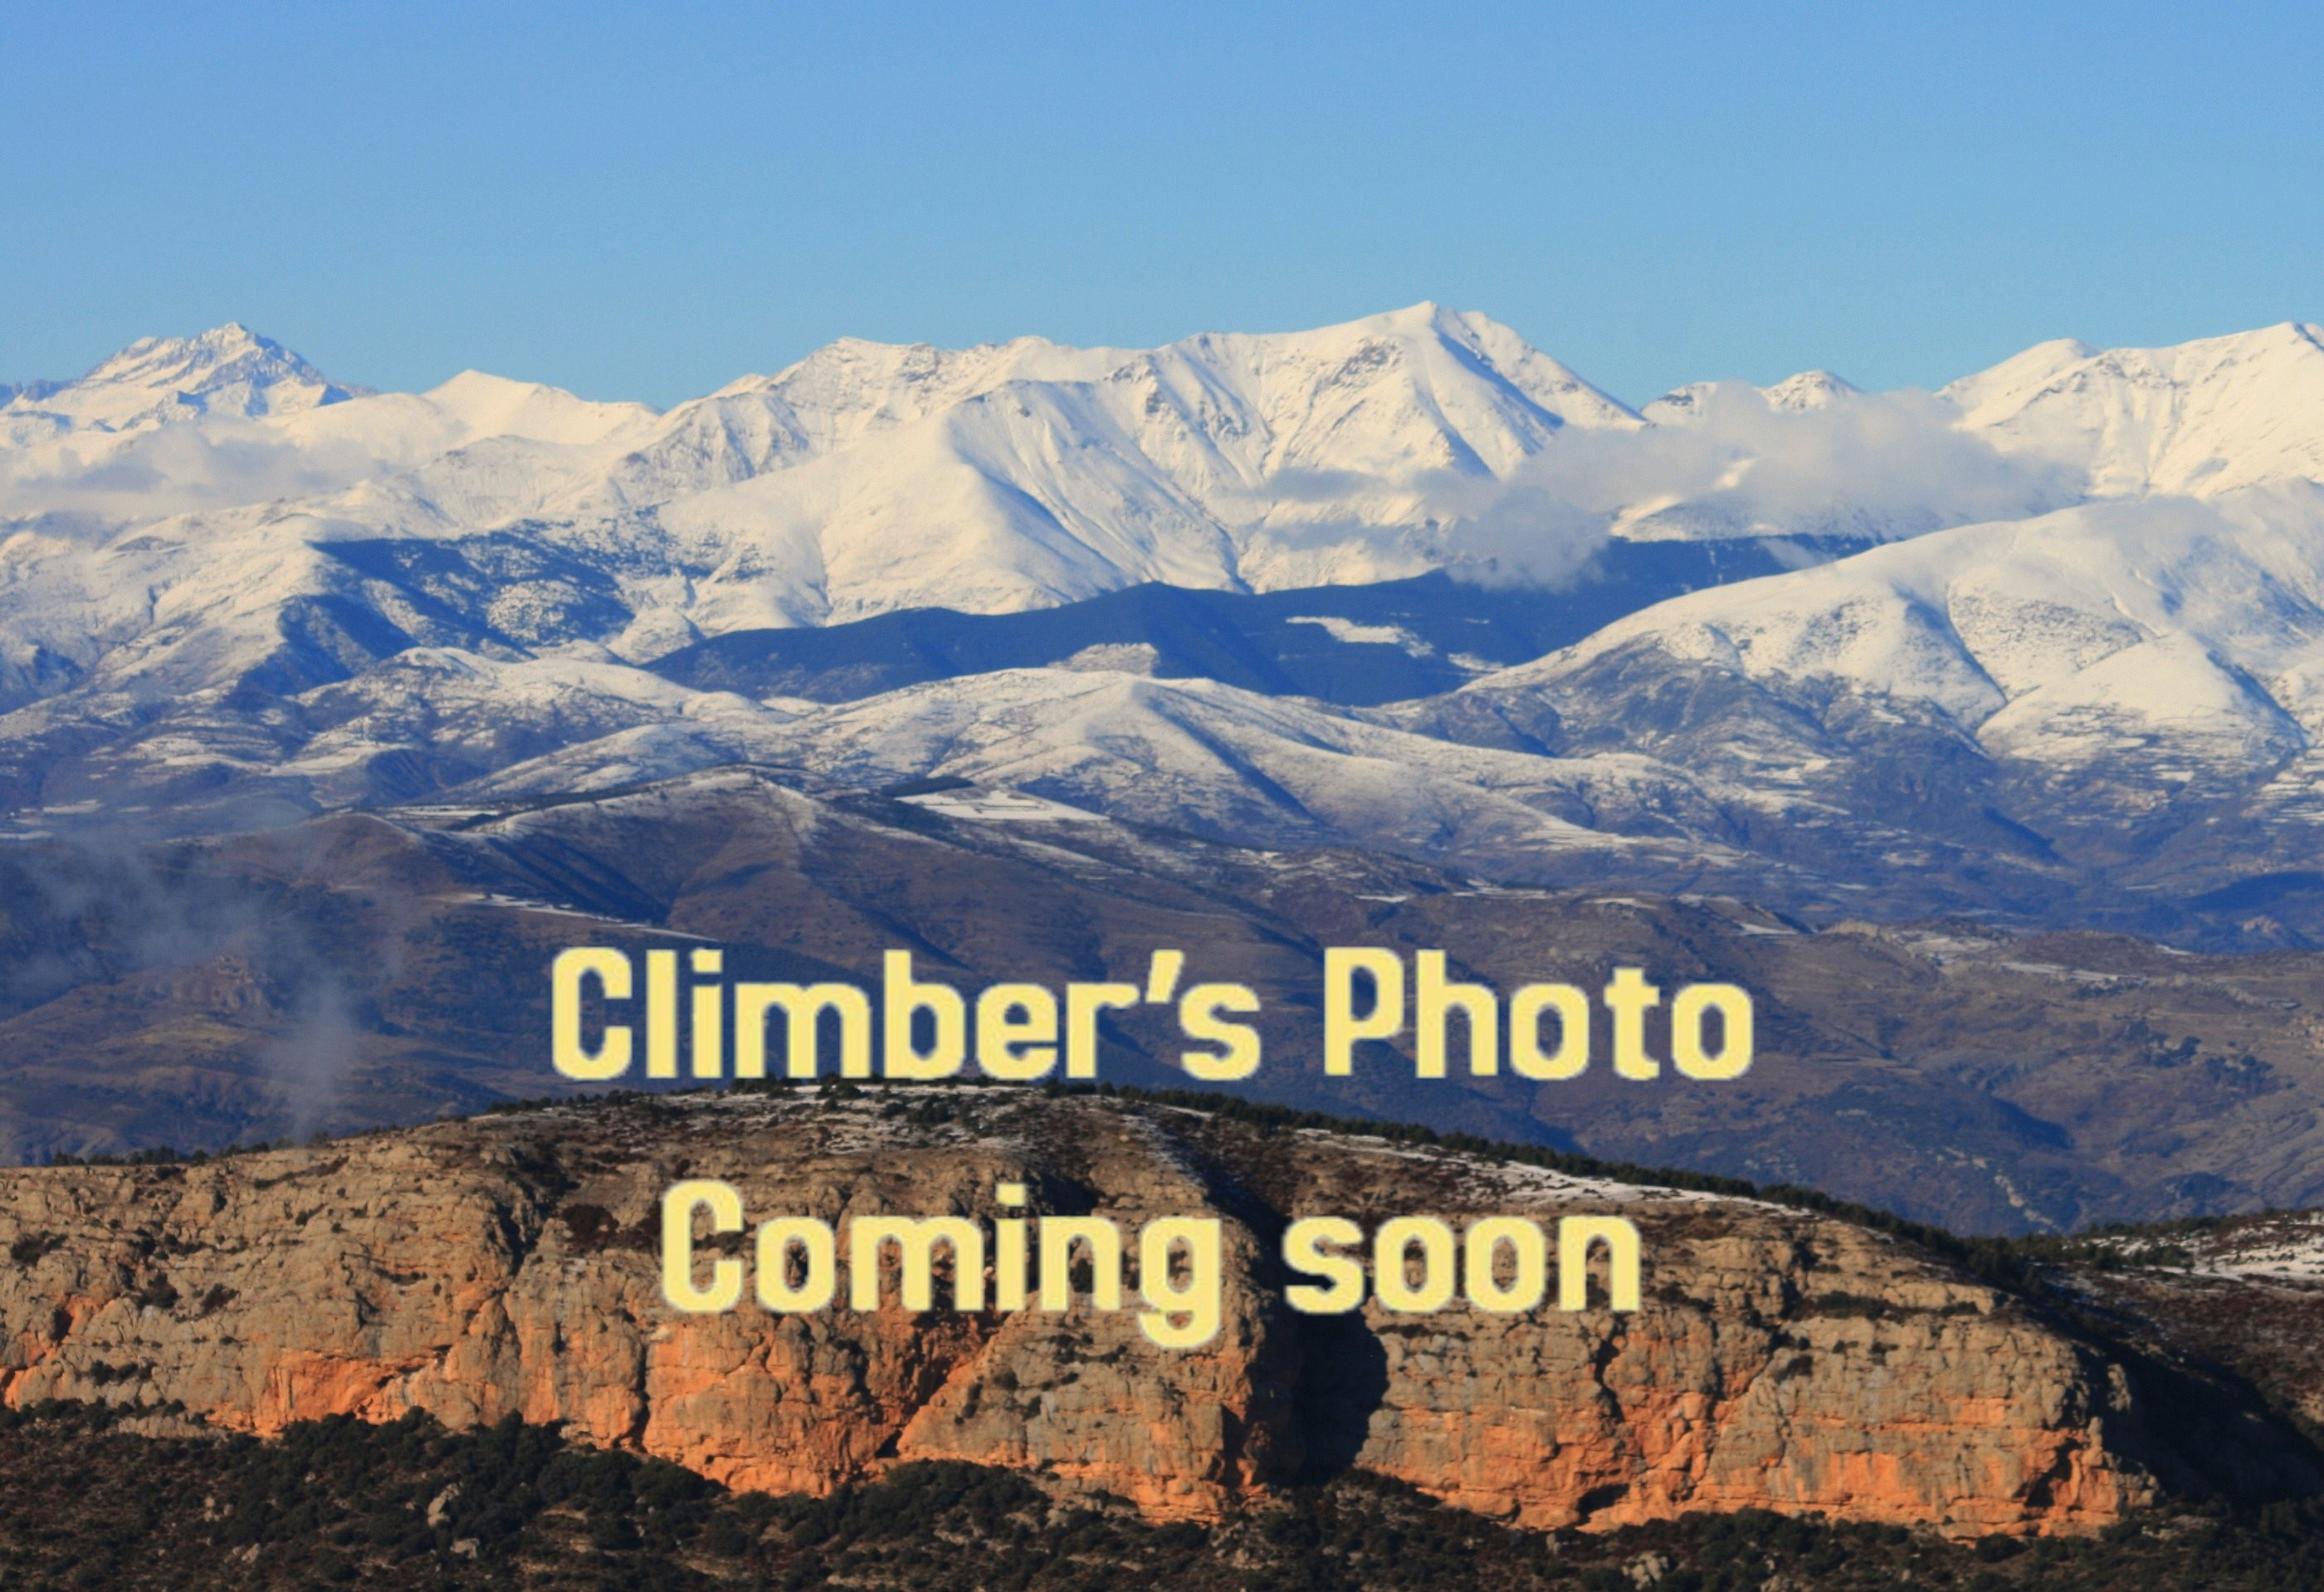 Climber photo coming soon